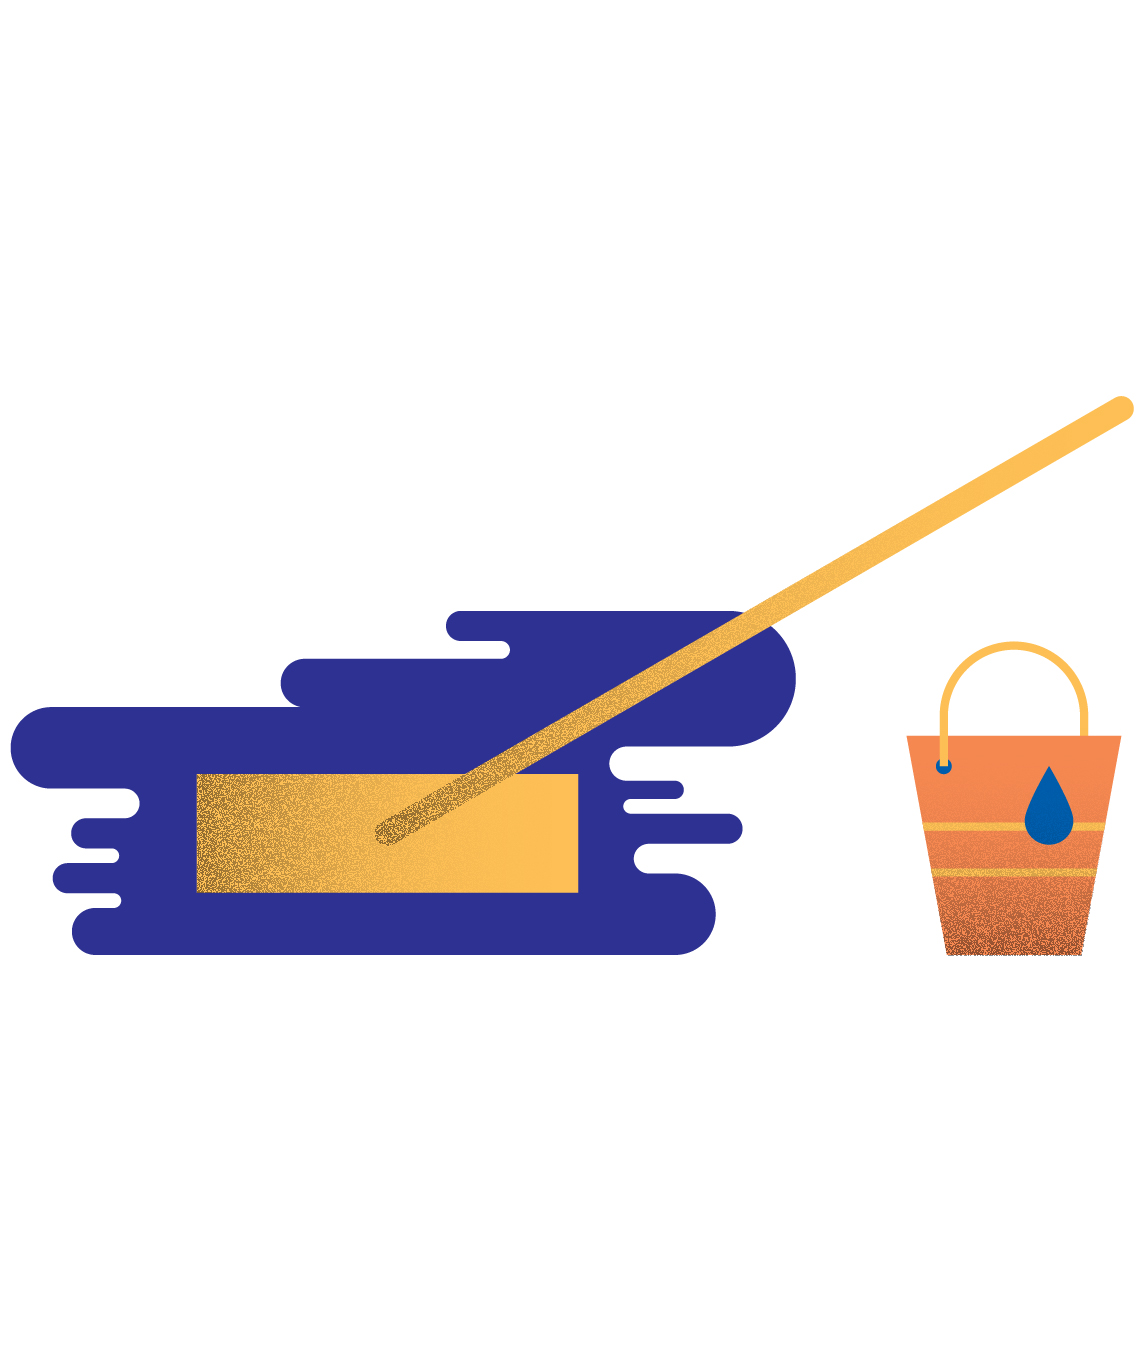 Checklist mopping image